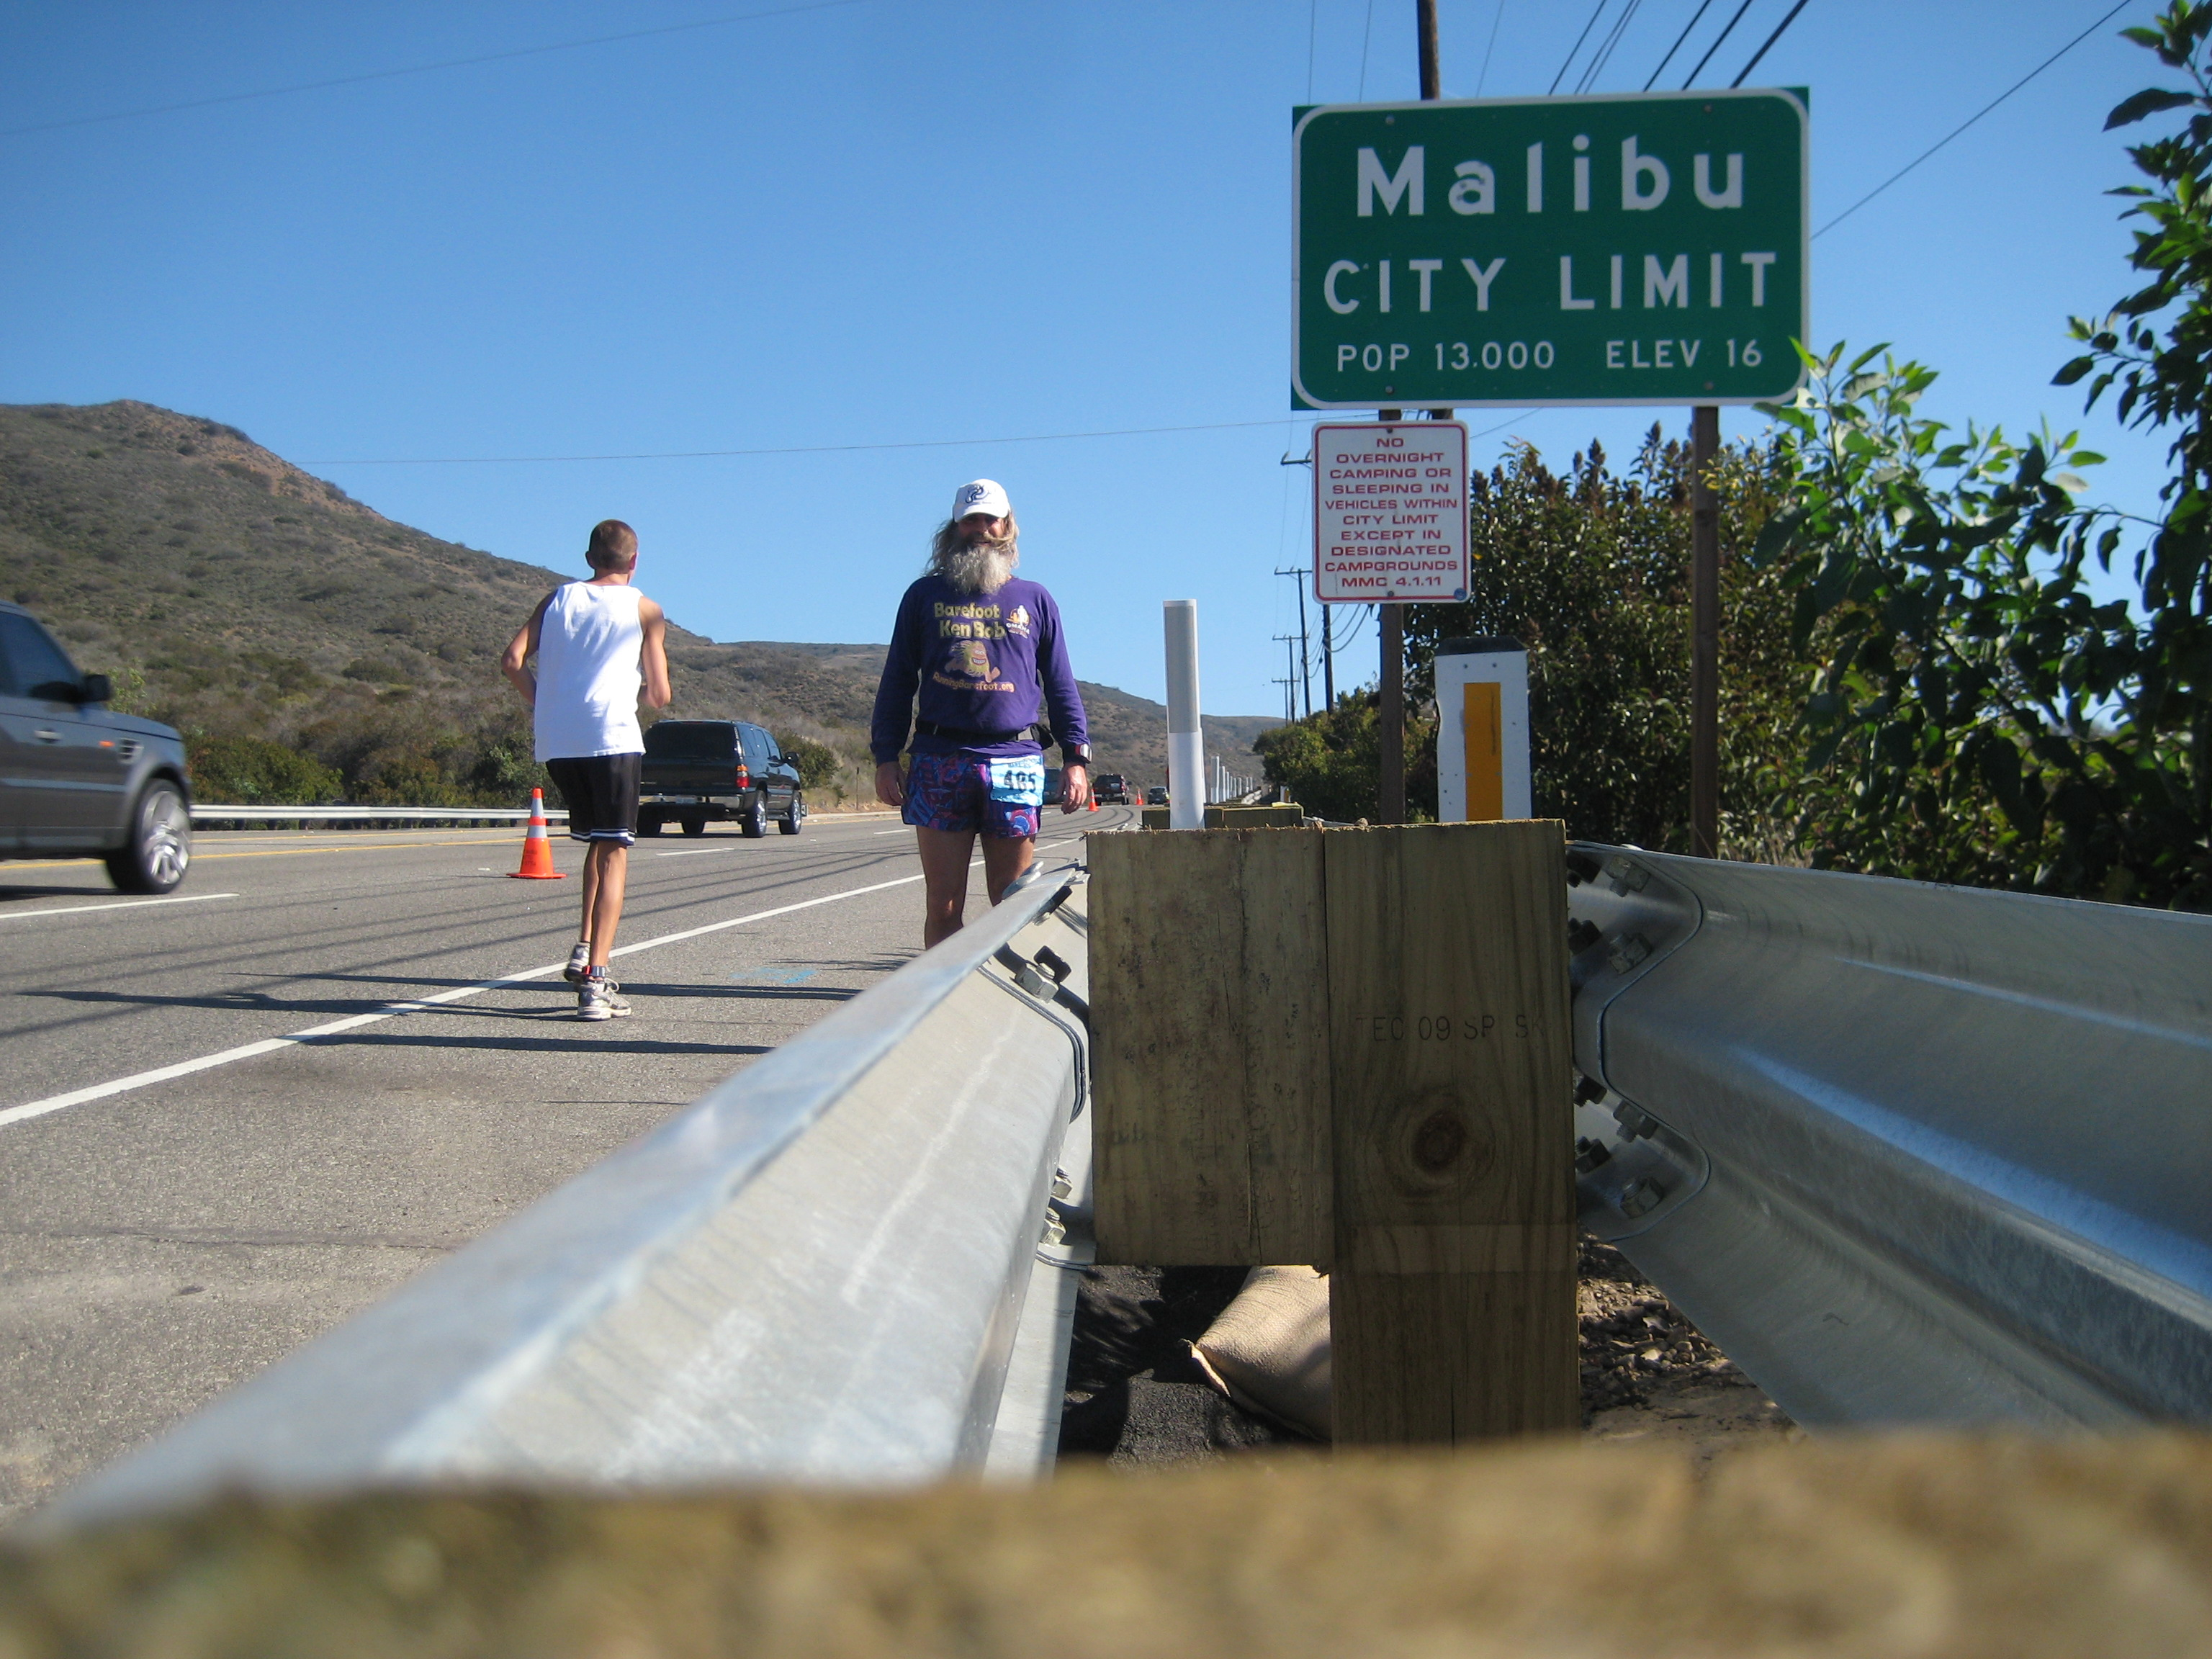 Ken Bob Saxton at the Malibu city limits, during the Malibu International Marathon 2009